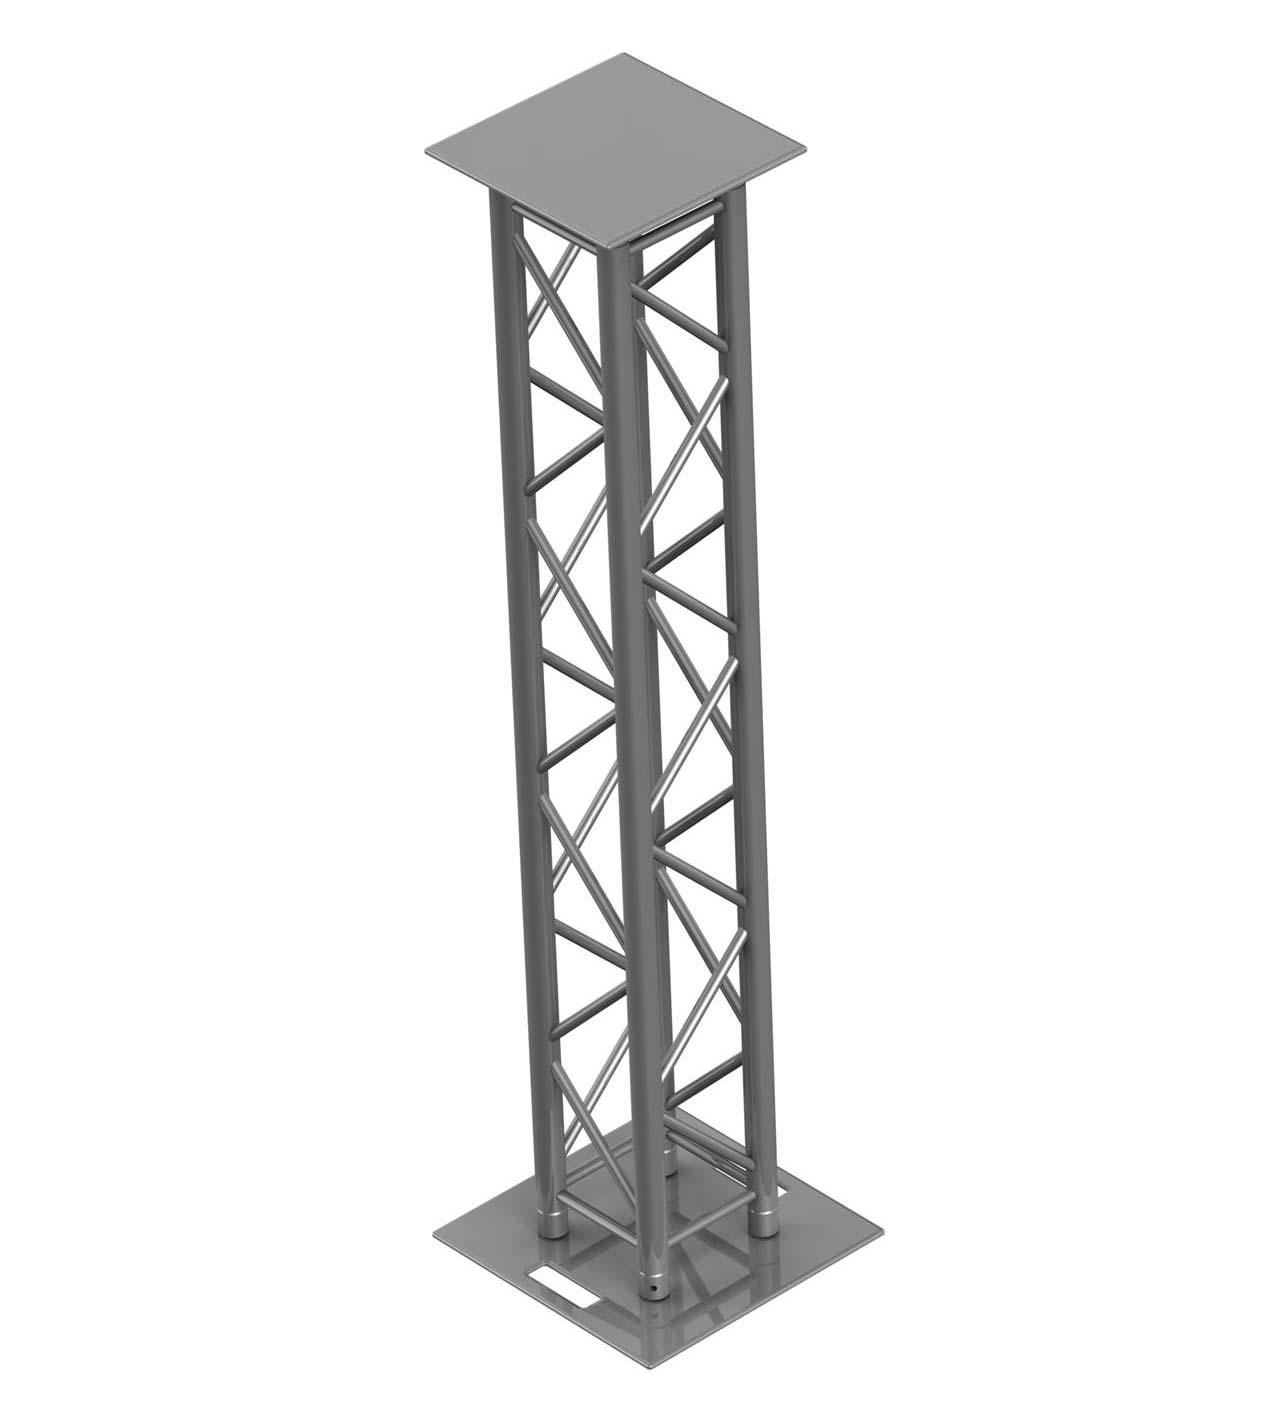 Trusst kt ct290 420t truss totem stand package 2 for Totem stand